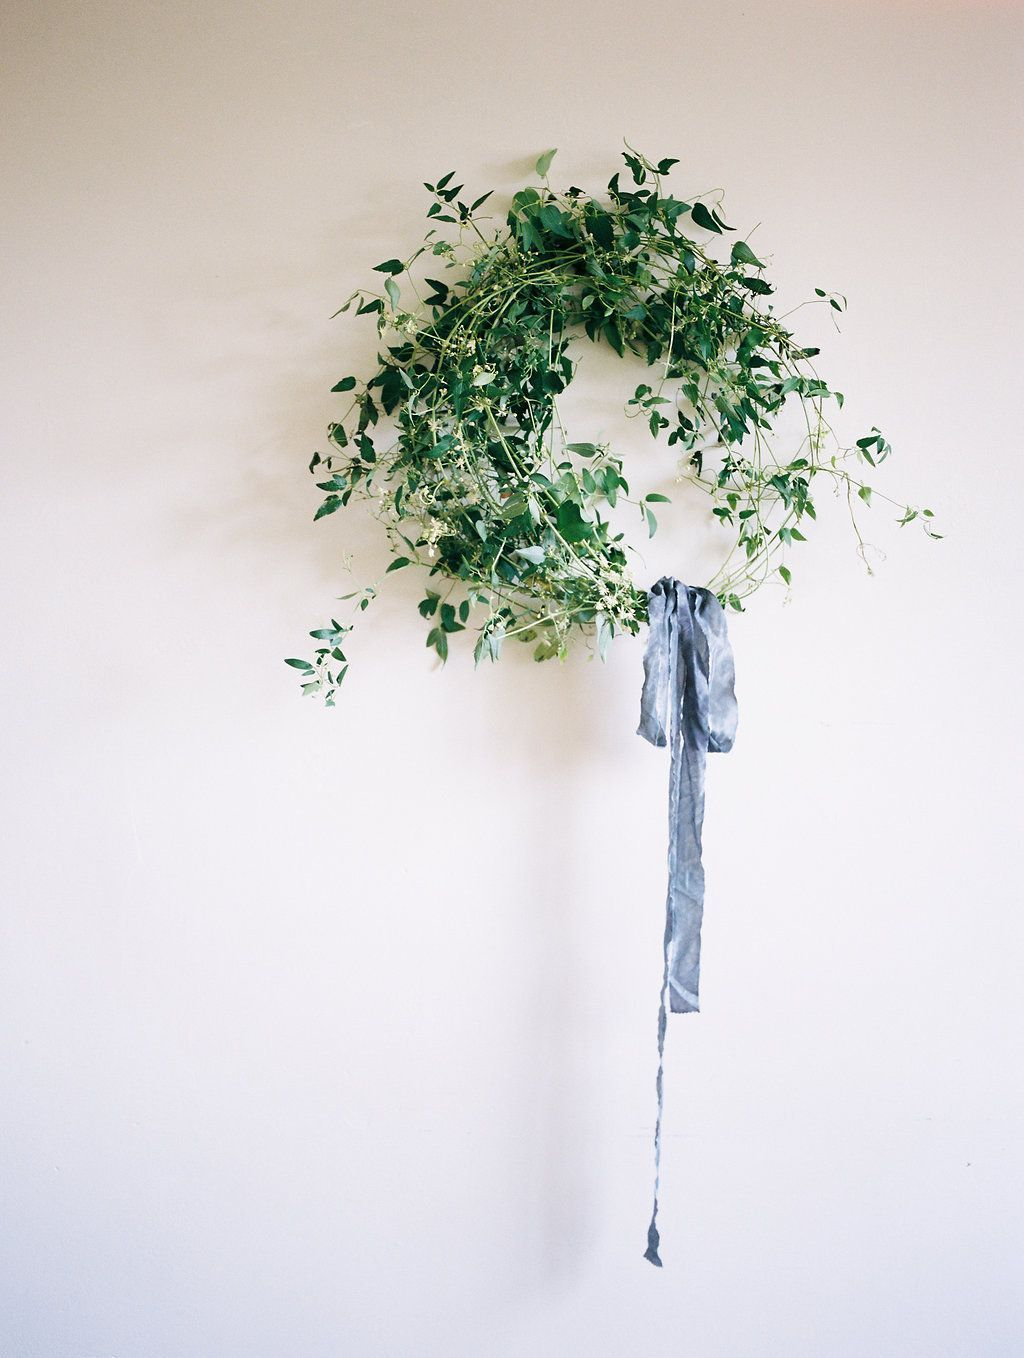 Vine Wreath Tutorial - Just in Time For The Holidays